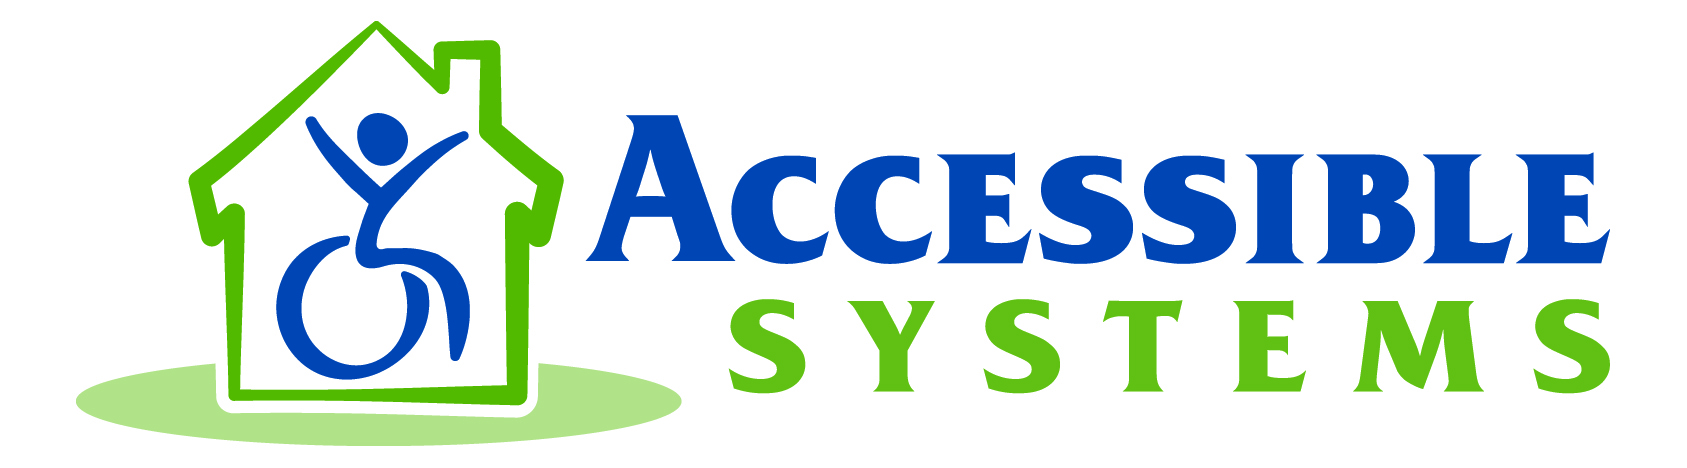 Accessible Systems of Northern Colorado reviews   Contractors at 2015 2nd Ave. - Greeley CO